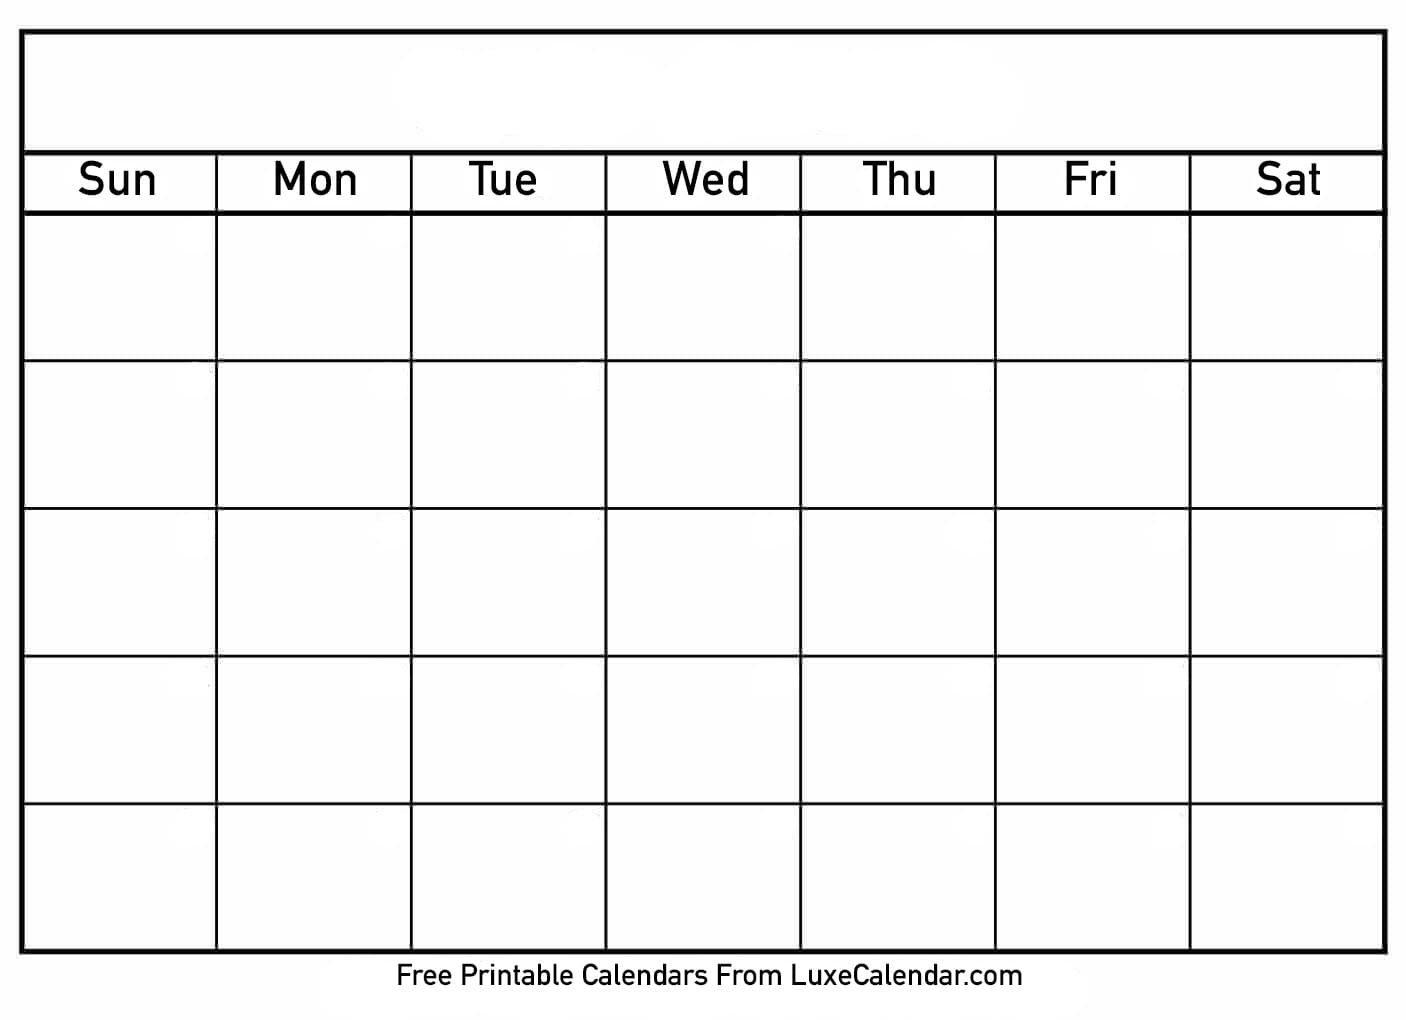 Blank Printable Calendar - Luxe Calendar throughout Free Printable Weekly Blank Calendar